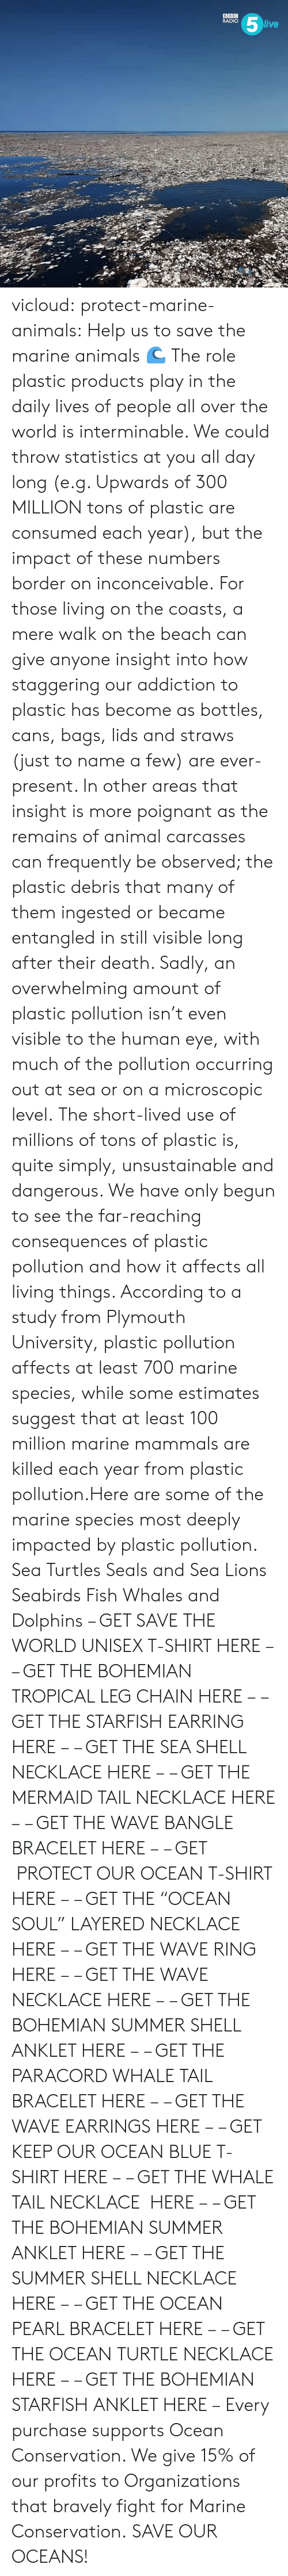 "Animals, Gif, and Radio: RADIO  ive vicloud:  protect-marine-animals:  Help us to save the marine animals 🌊 The role plastic products play in the daily lives of people all over the world is interminable. We could throw statistics at you all day long (e.g. Upwards of 300 MILLION tons of plastic are consumed each year), but the impact of these numbers border on inconceivable. For those living on the coasts, a mere walk on the beach can give anyone insight into how staggering our addiction to plastic has become as bottles, cans, bags, lids and straws (just to name a few) are ever-present. In other areas that insight is more poignant as the remains of animal carcasses can frequently be observed; the plastic debris that many of them ingested or became entangled in still visible long after their death. Sadly, an overwhelming amount of plastic pollution isn't even visible to the human eye, with much of the pollution occurring out at sea or on a microscopic level. The short-lived use of millions of tons of plastic is, quite simply, unsustainable and dangerous. We have only begun to see the far-reaching consequences of plastic pollution and how it affects all living things. According to a study from Plymouth University, plastic pollution affects at least 700 marine species, while some estimates suggest that at least 100 million marine mammals are killed each year from plastic pollution.Here are some of the marine species most deeply impacted by plastic pollution. Sea Turtles Seals and Sea Lions Seabirds Fish Whales and Dolphins – GET SAVE THE WORLD UNISEX T-SHIRT HERE – – GET THE BOHEMIAN TROPICAL LEG CHAIN HERE – – GET THE STARFISH EARRING HERE – – GET THE SEA SHELL NECKLACE HERE – – GET THE MERMAID TAIL NECKLACE HERE – – GET THE WAVE BANGLE BRACELET HERE – – GET  PROTECT OUR OCEAN T-SHIRT HERE – – GET THE ""OCEAN SOUL"" LAYERED NECKLACE HERE – – GET THE WAVE RING HERE – – GET THE WAVE NECKLACE HERE – – GET THE BOHEMIAN SUMMER SHELL ANKLET HERE – – GET THE PARACORD WHALE TAIL BRACELET HERE – – GET THE WAVE EARRINGS HERE – – GET KEEP OUR OCEAN BLUE T-SHIRT HERE – – GET THE WHALE TAIL NECKLACE  HERE – – GET THE BOHEMIAN SUMMER ANKLET HERE – – GET THE SUMMER SHELL NECKLACE HERE – – GET THE OCEAN PEARL BRACELET HERE – – GET THE OCEAN TURTLE NECKLACE HERE – – GET THE BOHEMIAN STARFISH ANKLET HERE – Every purchase supports Ocean Conservation. We give 15% of our profits to Organizations that bravely fight for Marine Conservation.  SAVE OUR OCEANS!"